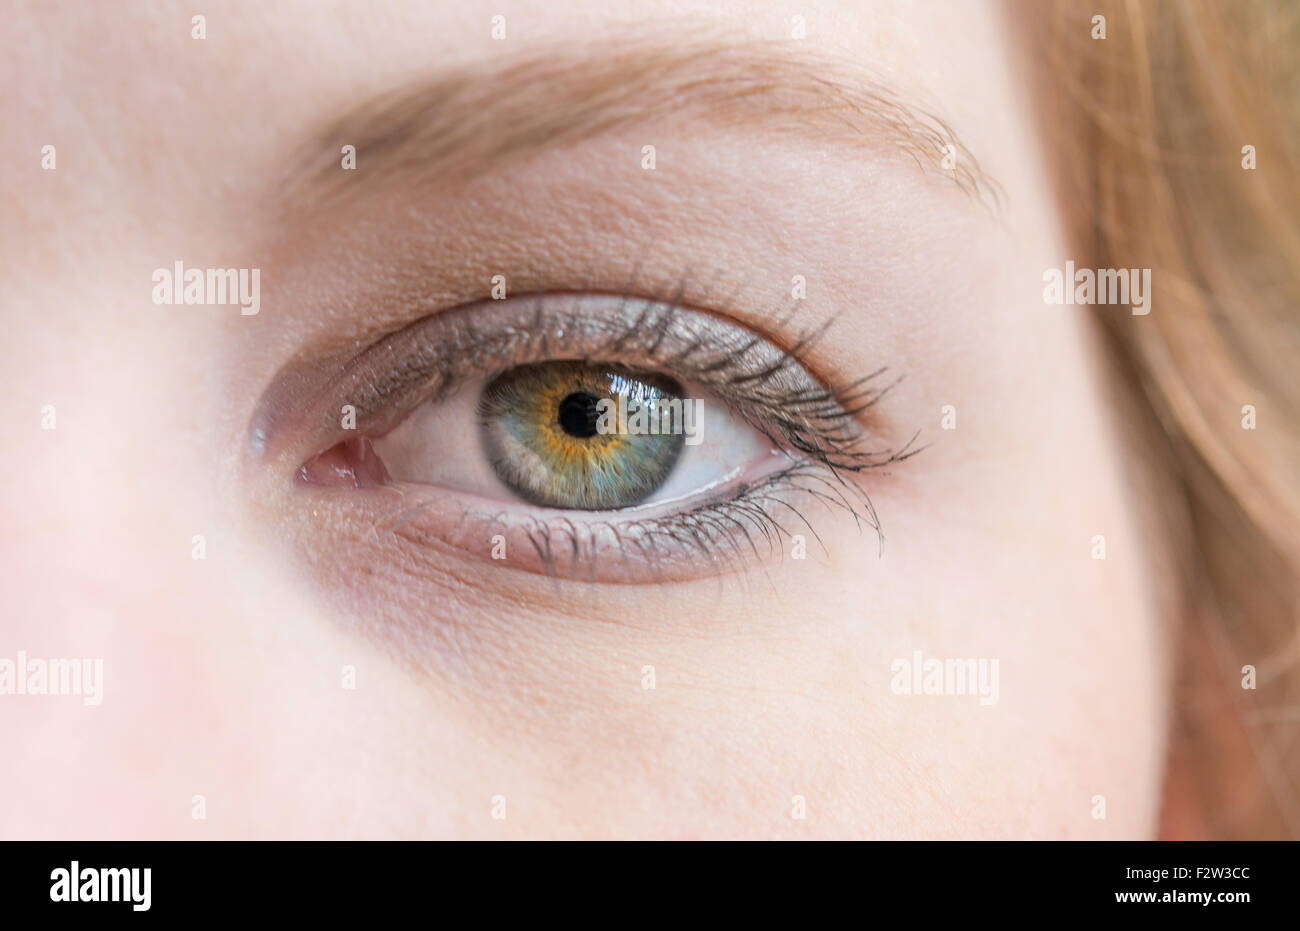 close-up of young womans eye and face blinking abstract MR model released - Stock Image